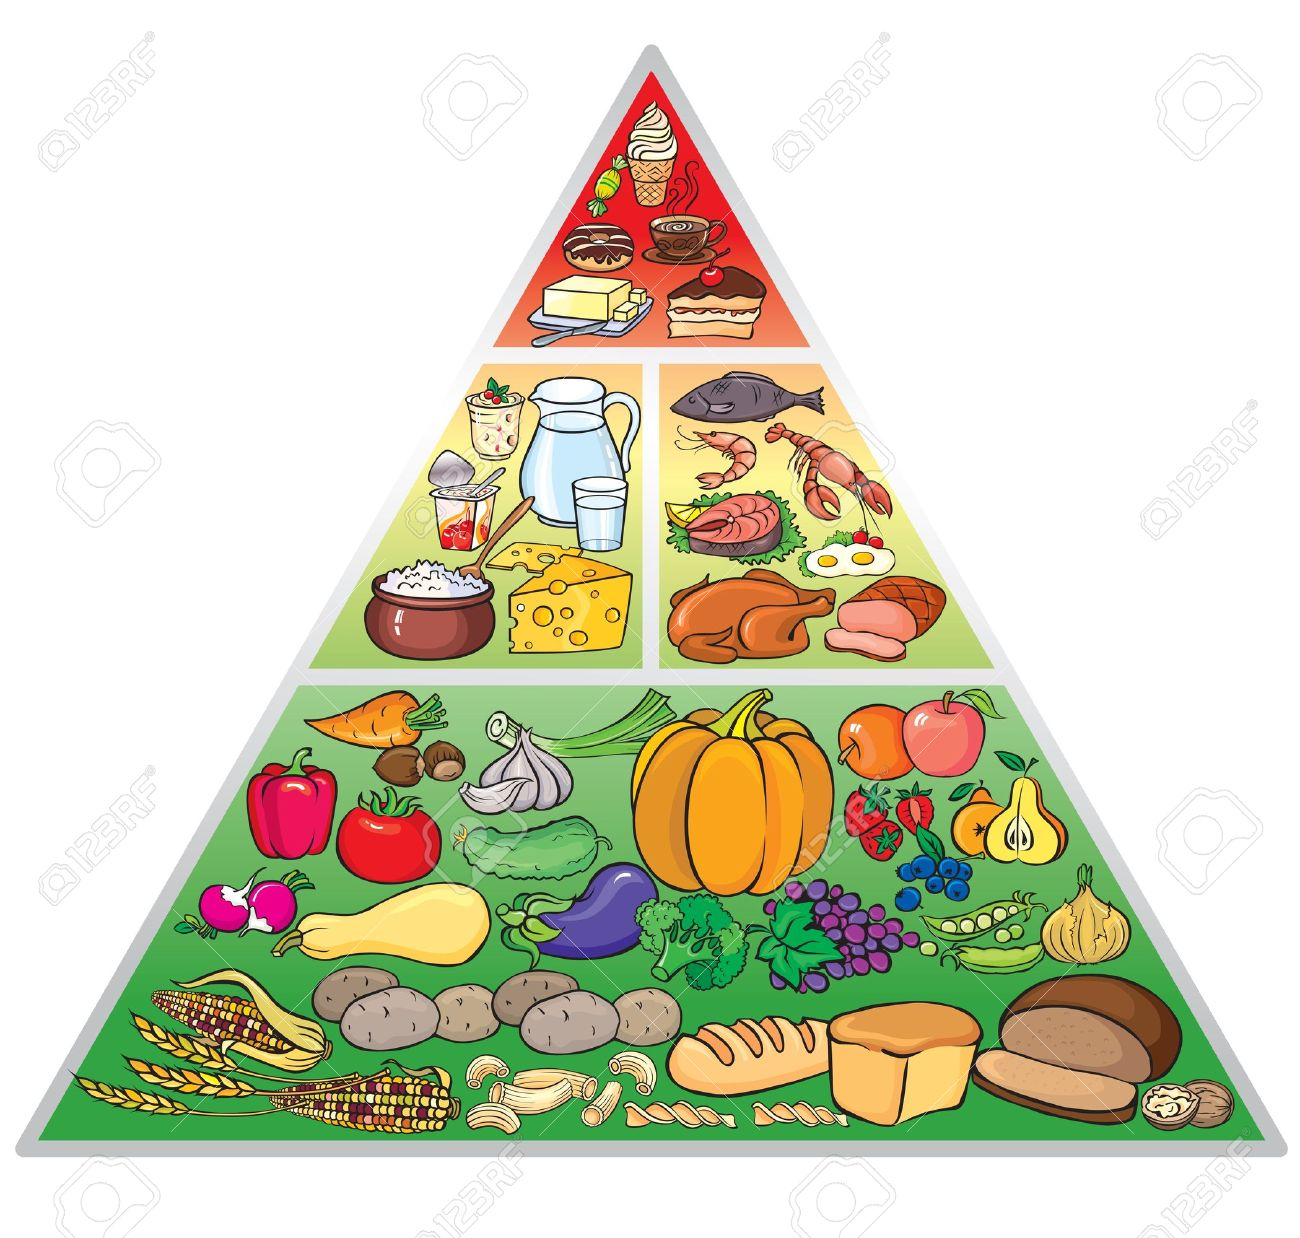 14071407-Illustration-of-food-pyramid-Stock-Vector-healthy